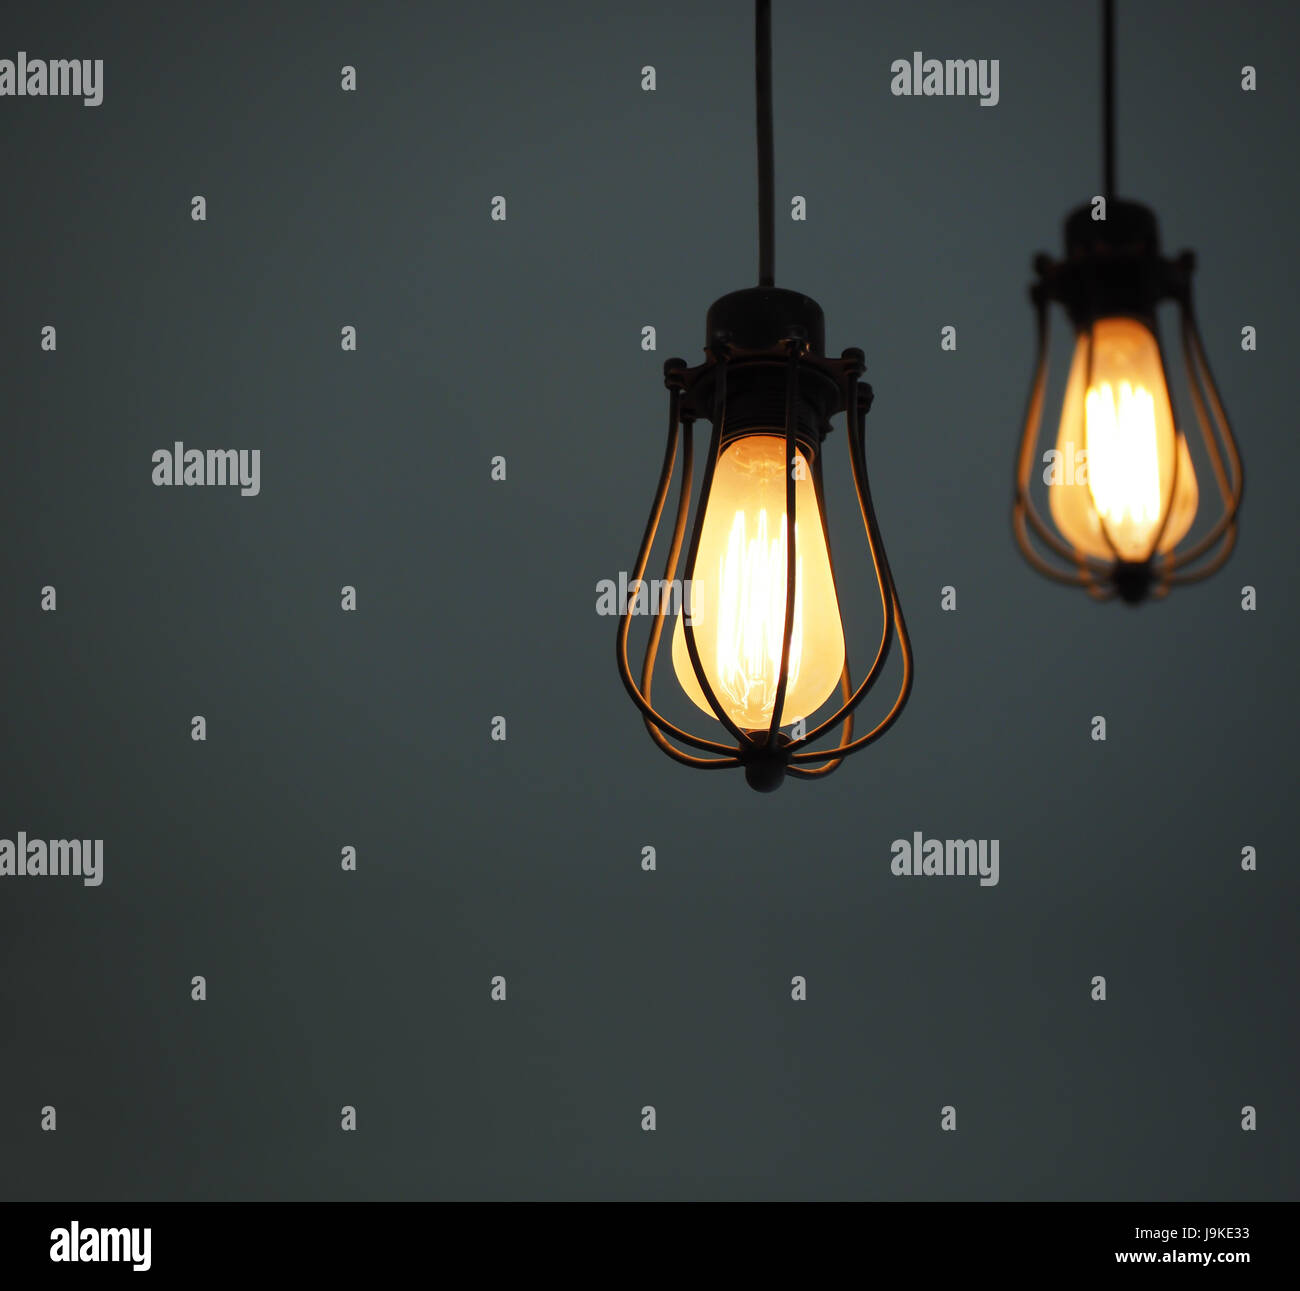 Close up of yellow illuminated hanging light bulbs on grey plain background with text space - Stock Image